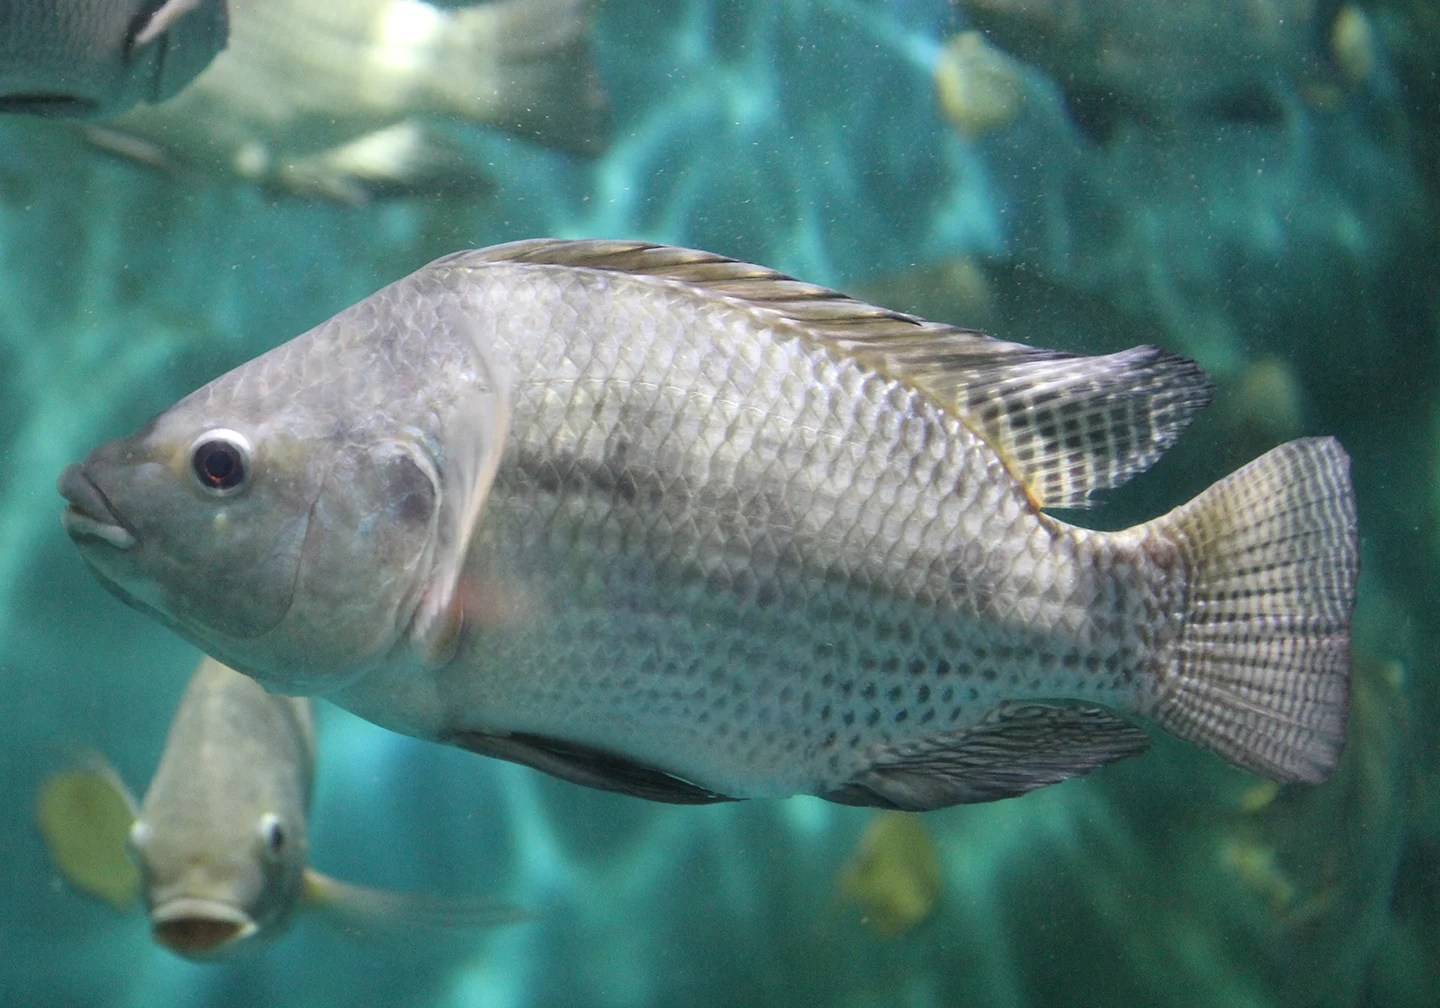 A Blue Tilapia, one of the most invasive fish in Florida.